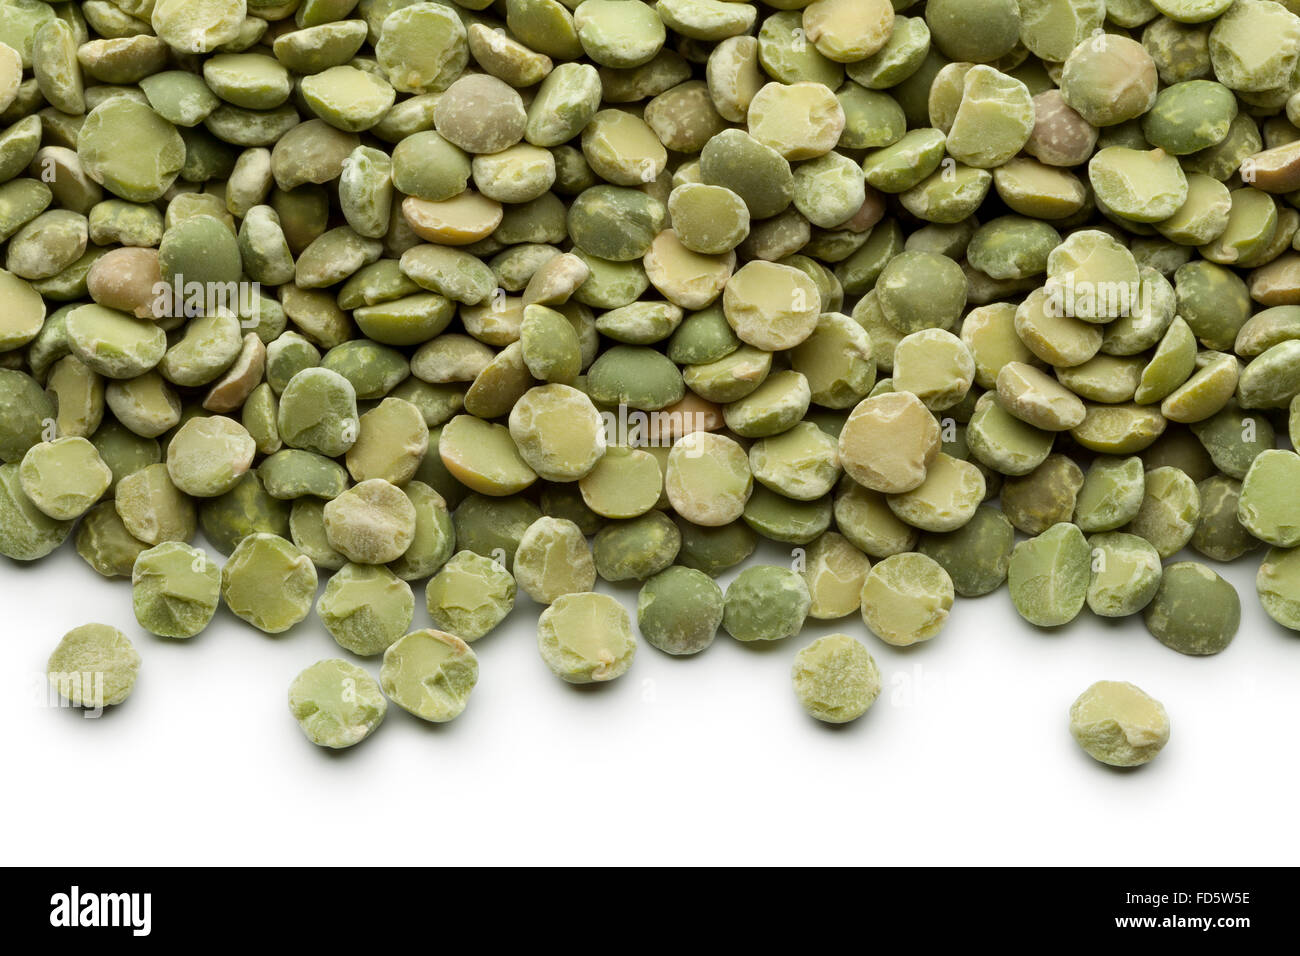 Scattered dried green split peas - Stock Image